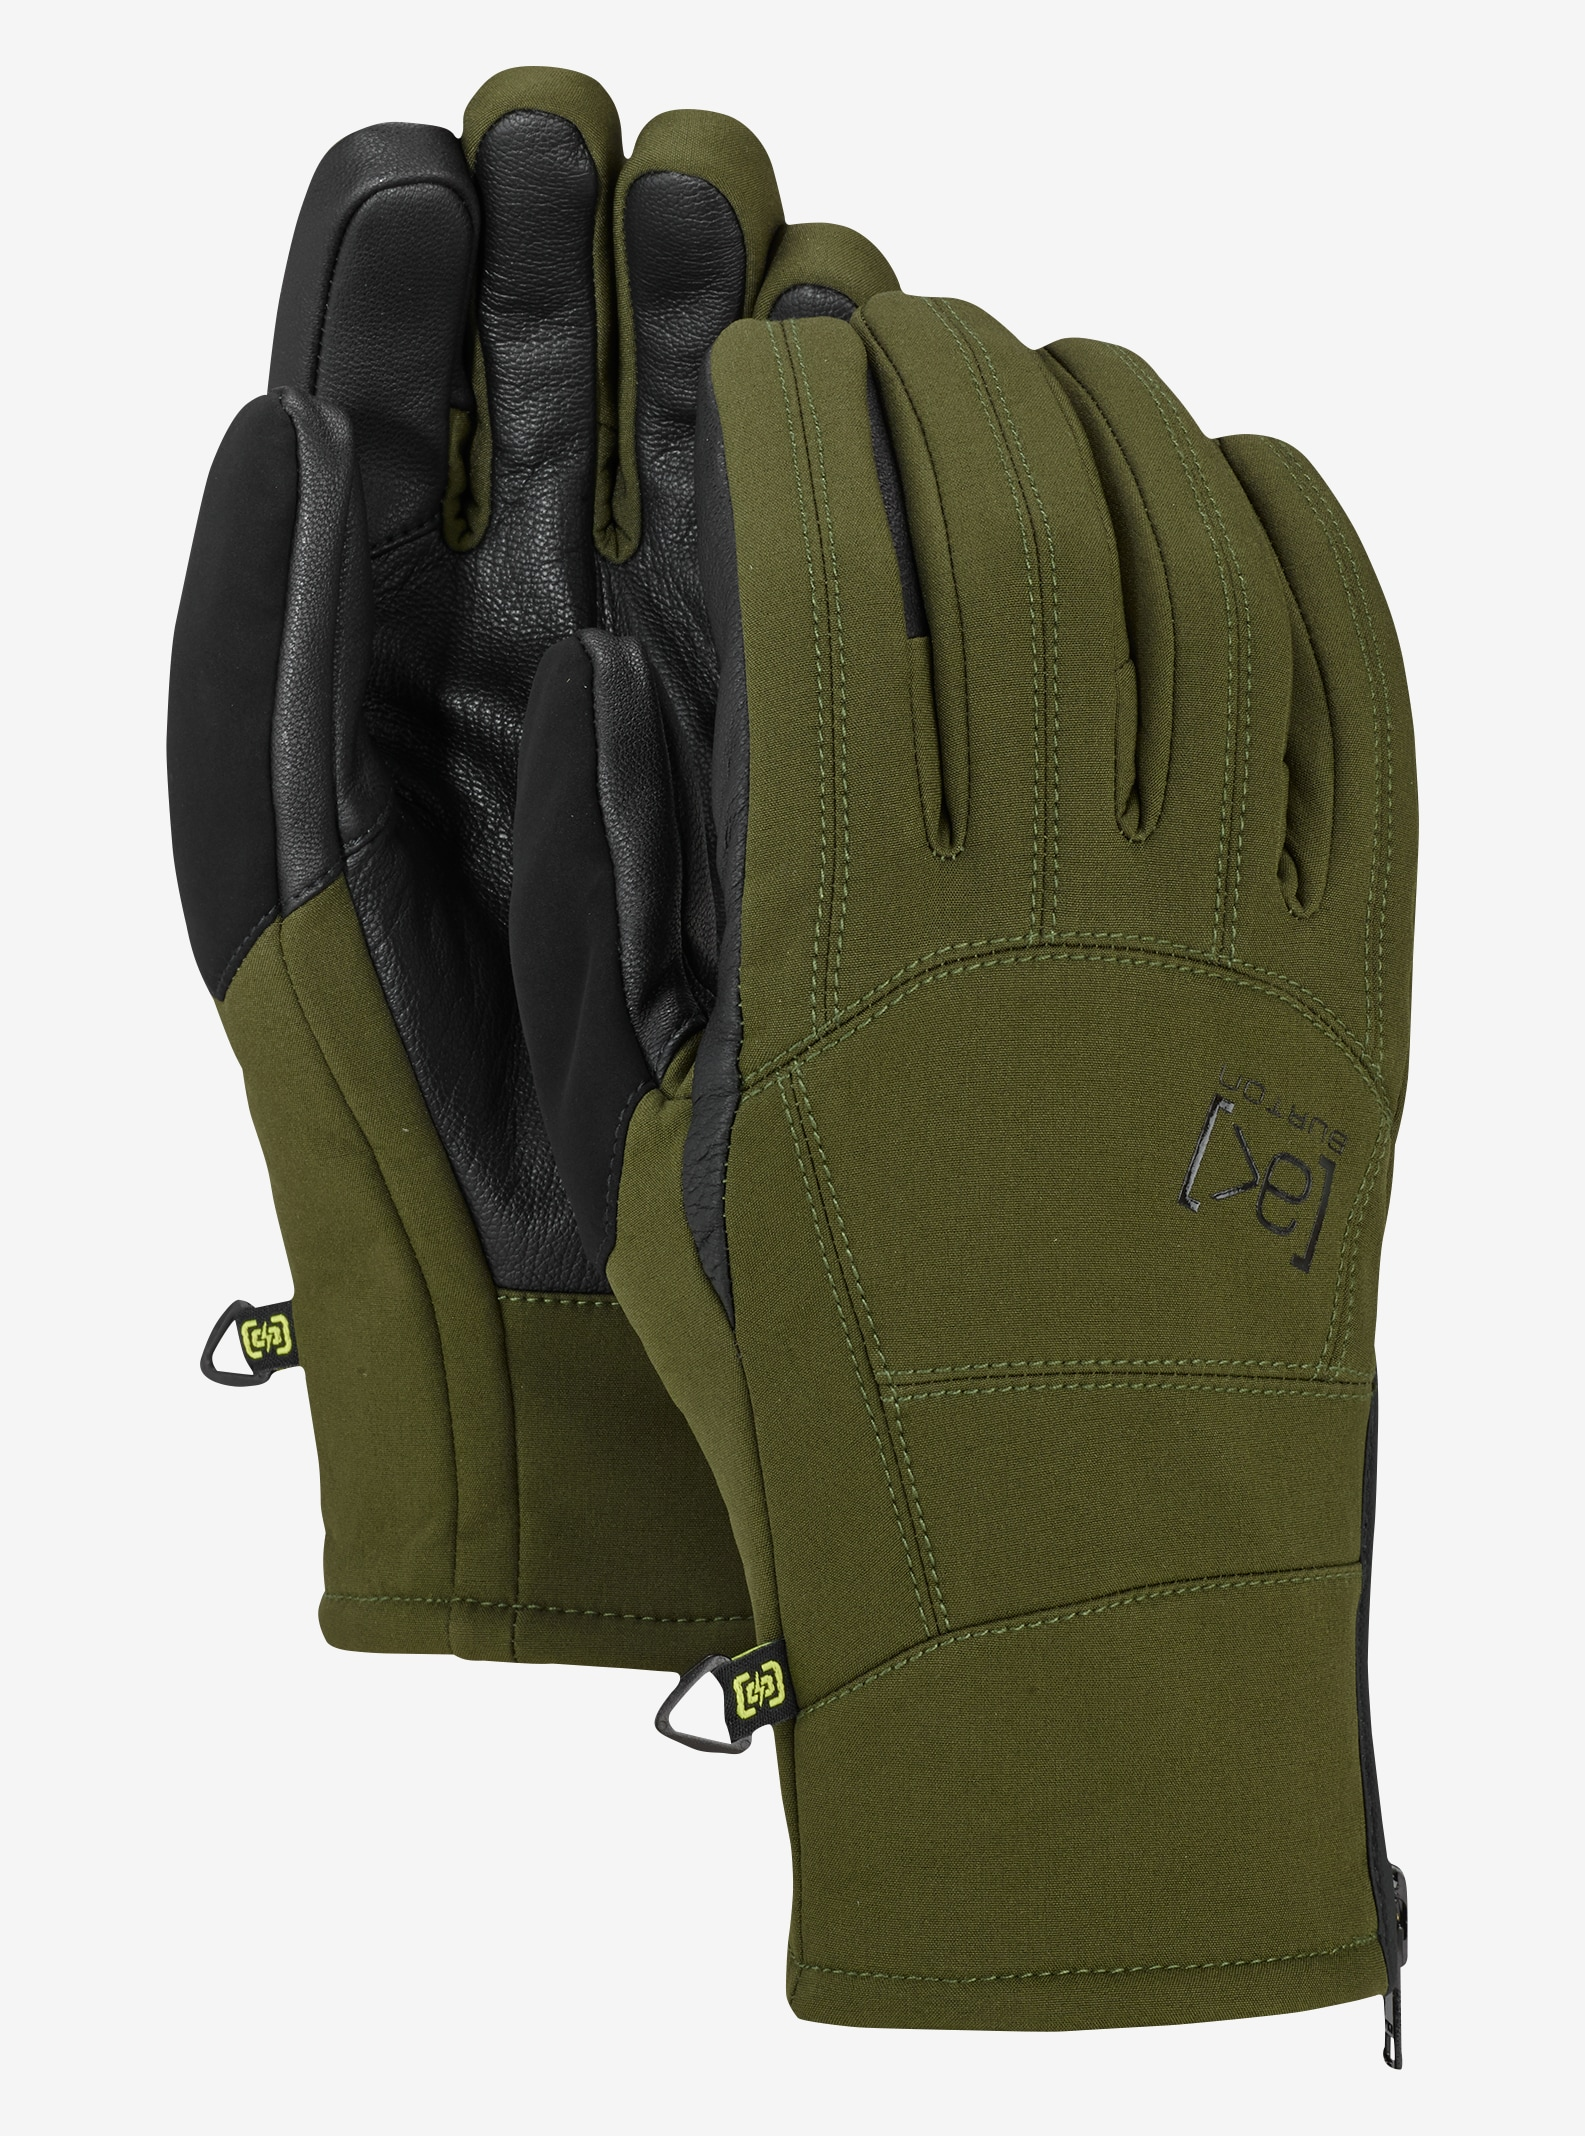 Burton [ak] Tech Glove shown in Forest Night